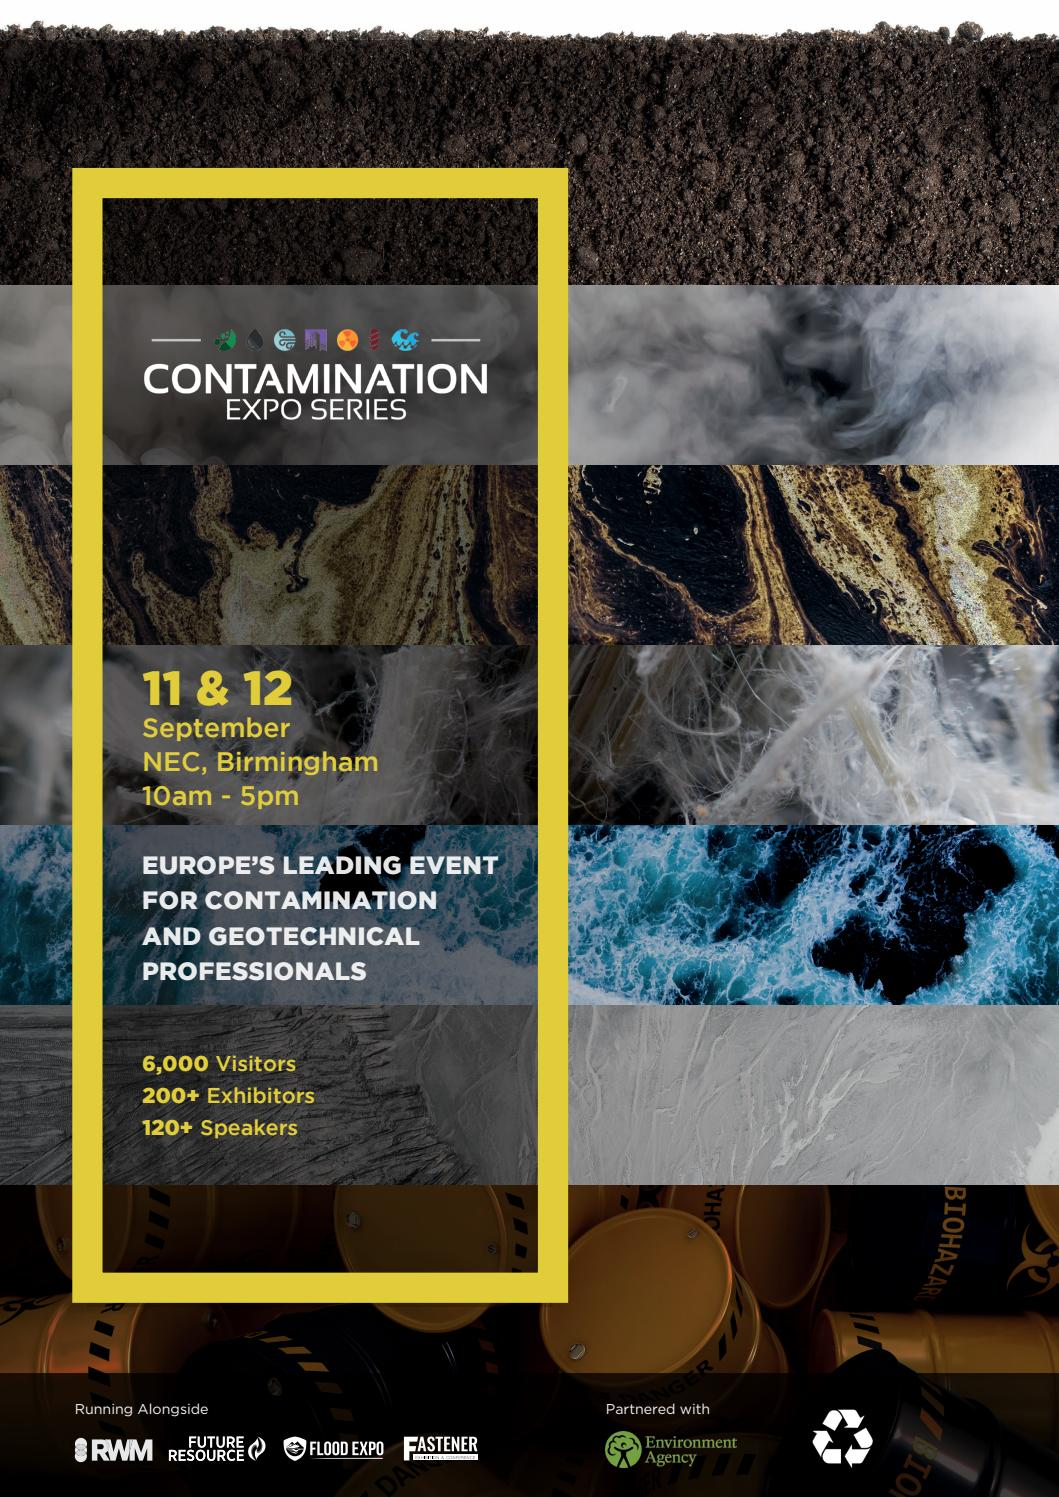 Contamination Expo Series Show Highlights 2019 by Prysm